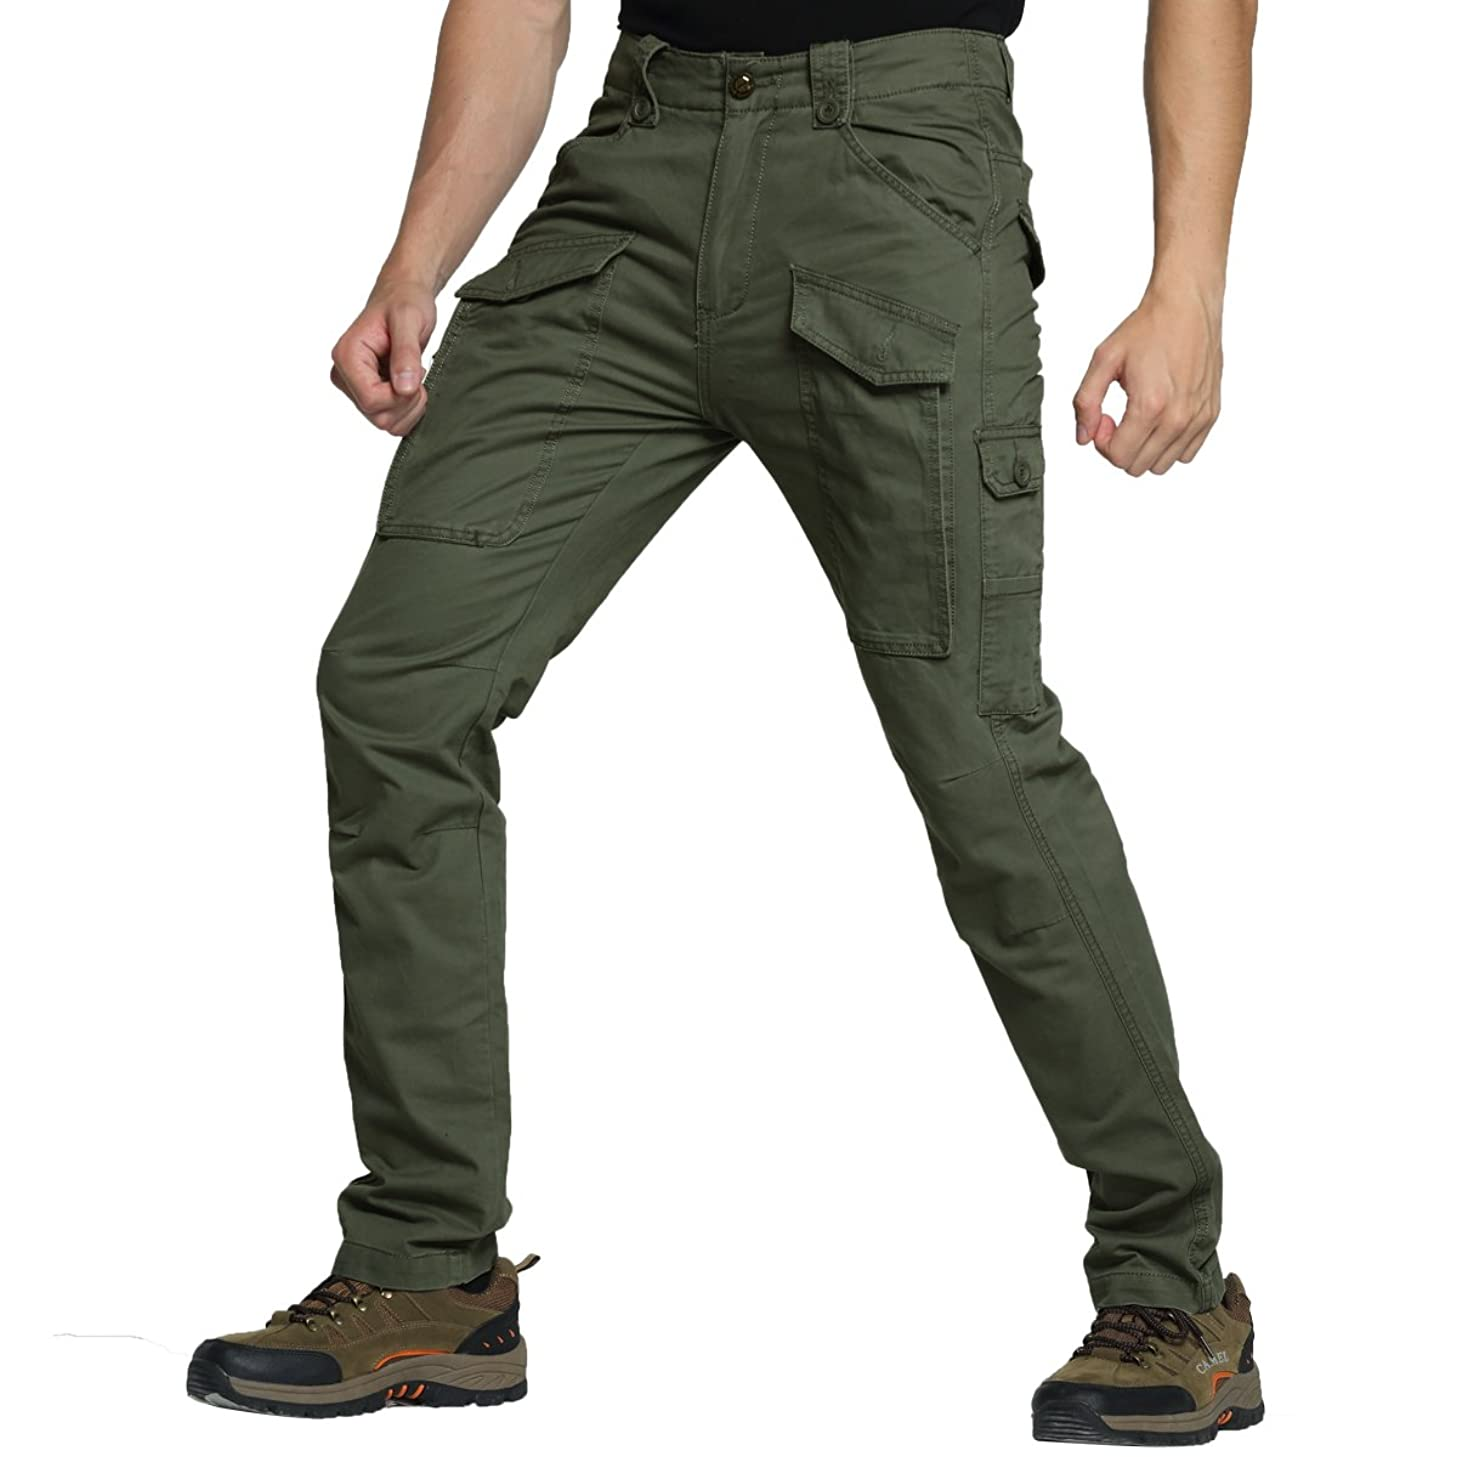 Men's Cargo Relaxed Fit Pants Tactical Combat Army Trousers Work Military